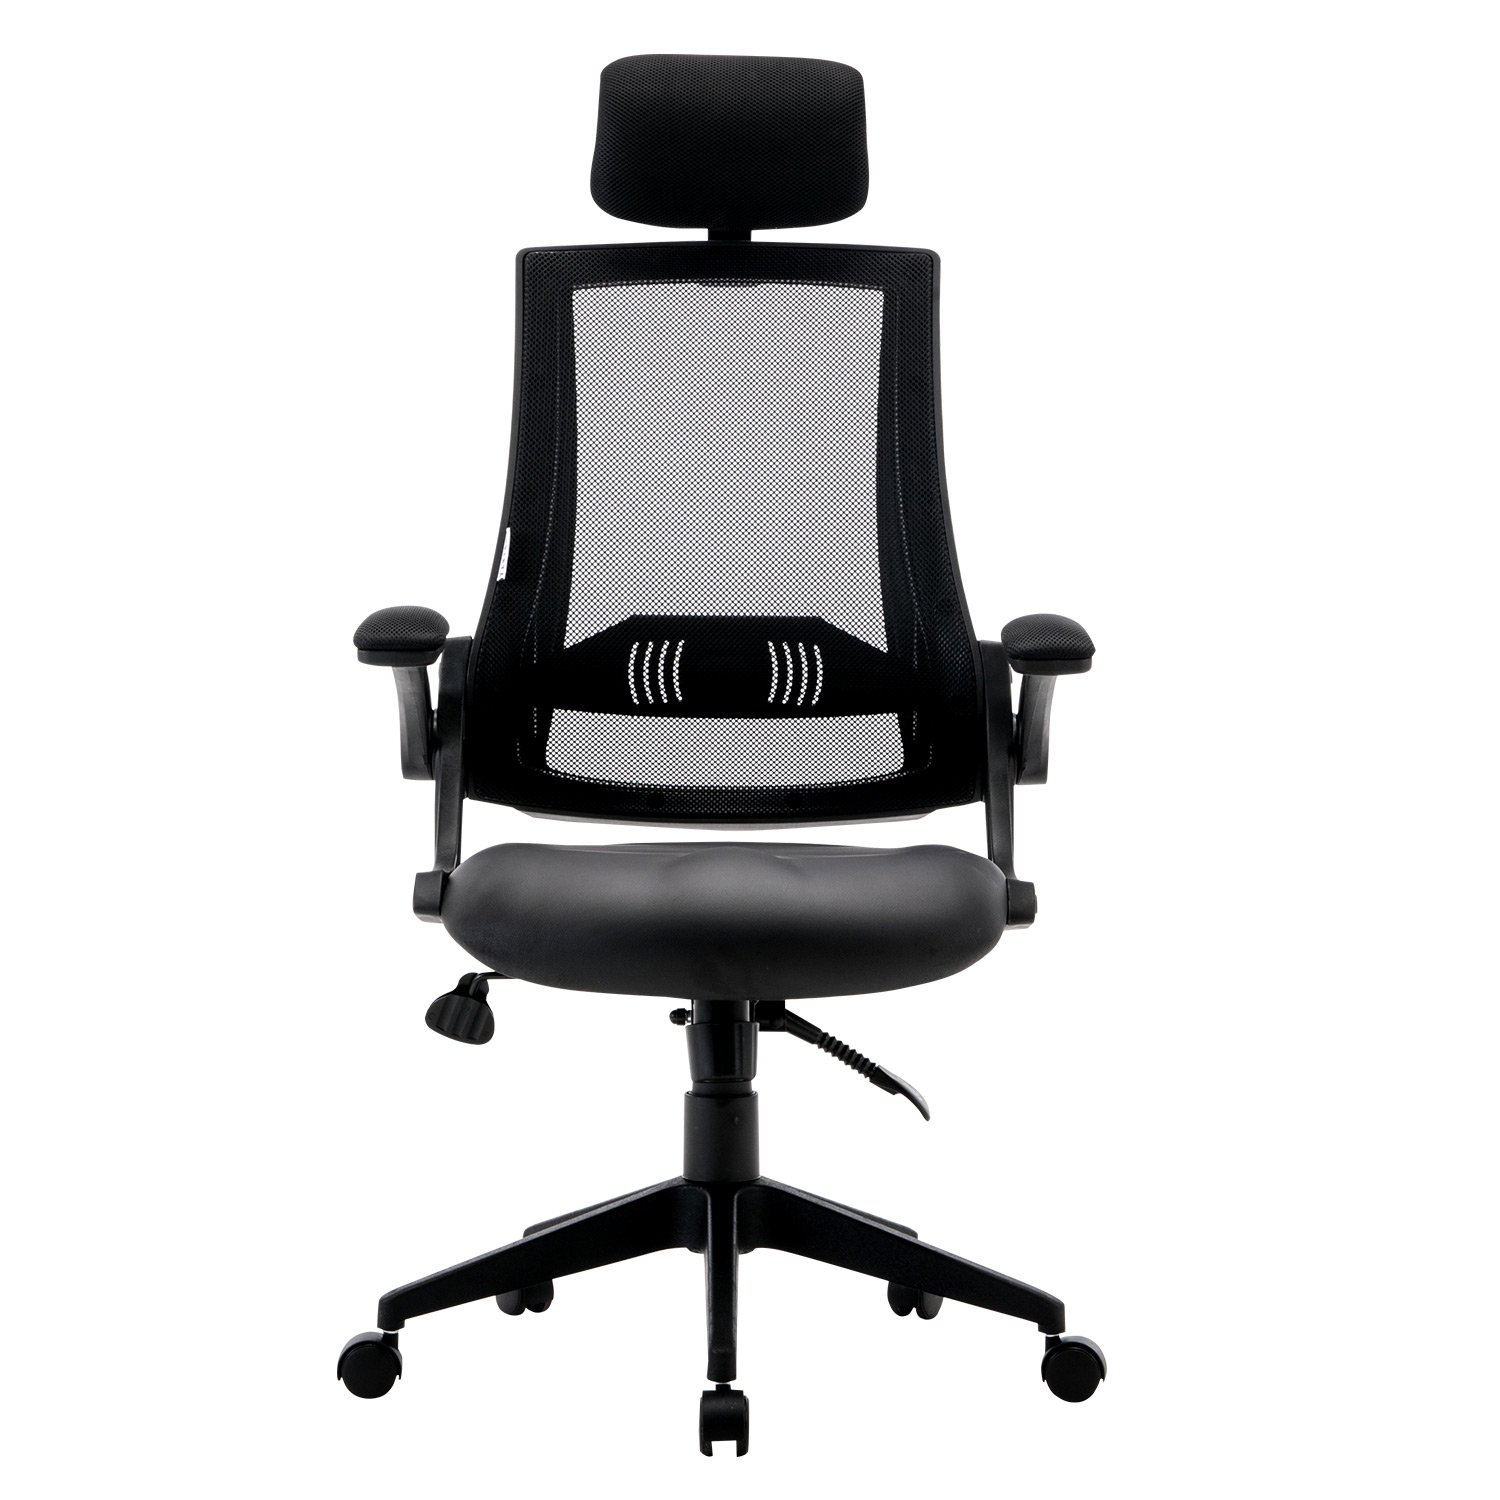 LCH Ergonomic Mesh Office Chair with Leather Seat, High Back,Flip-up Armrests,90°- 110° Tilt Lock,Adjustable Back Lumbar Support Computer Desk Task Executive Swivel Chair